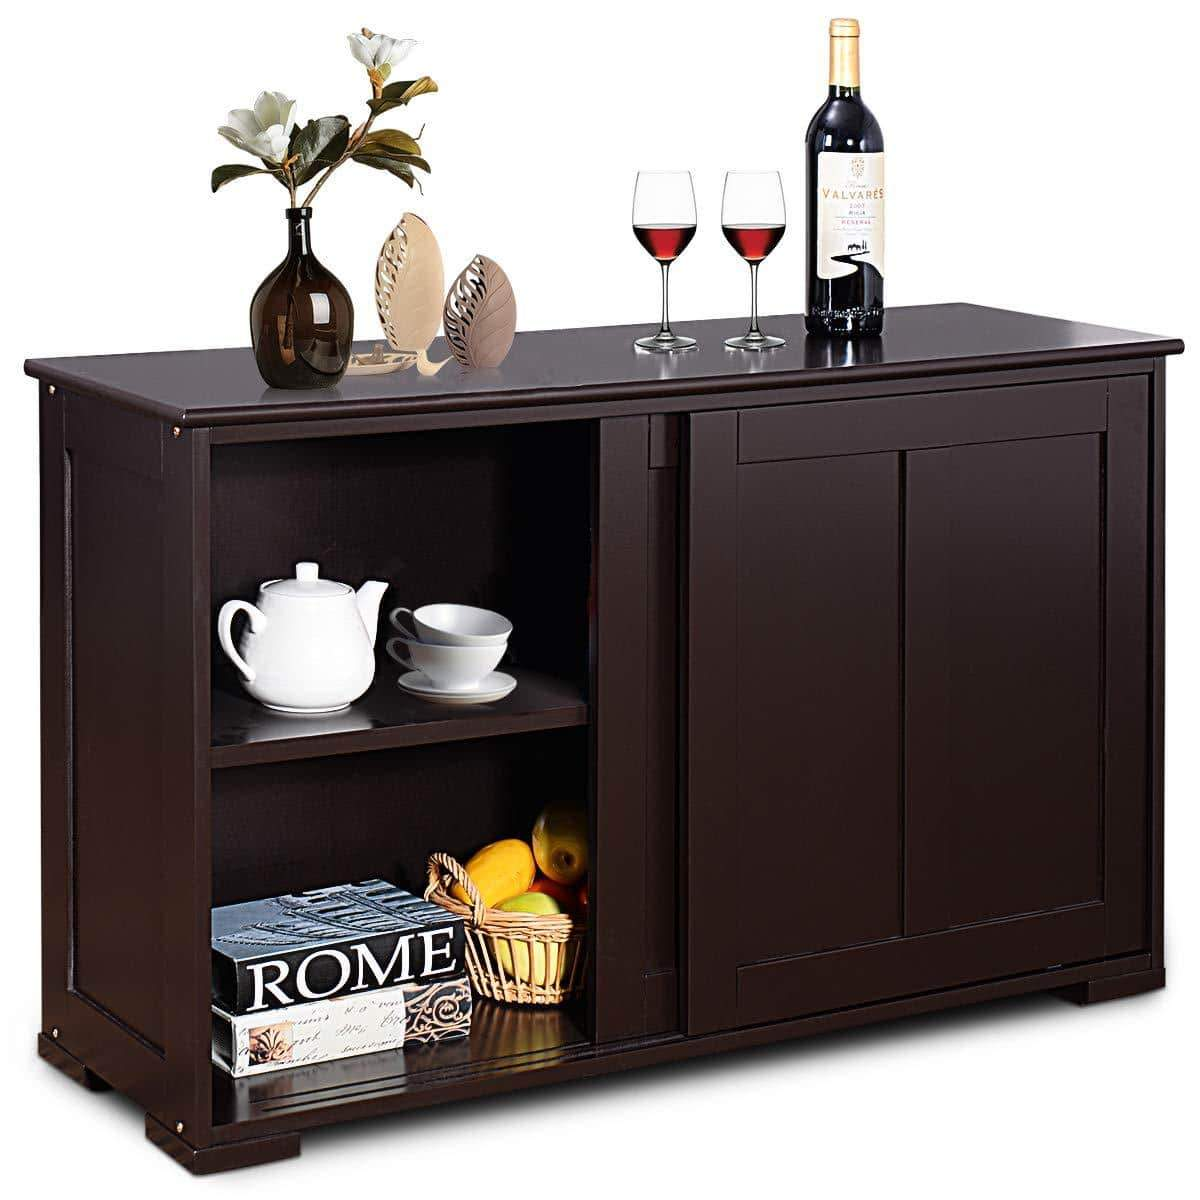 Select nice costzon kitchen storage sideboard antique stackable cabinet for home cupboard buffet dining room espresso sideboard with sliding door